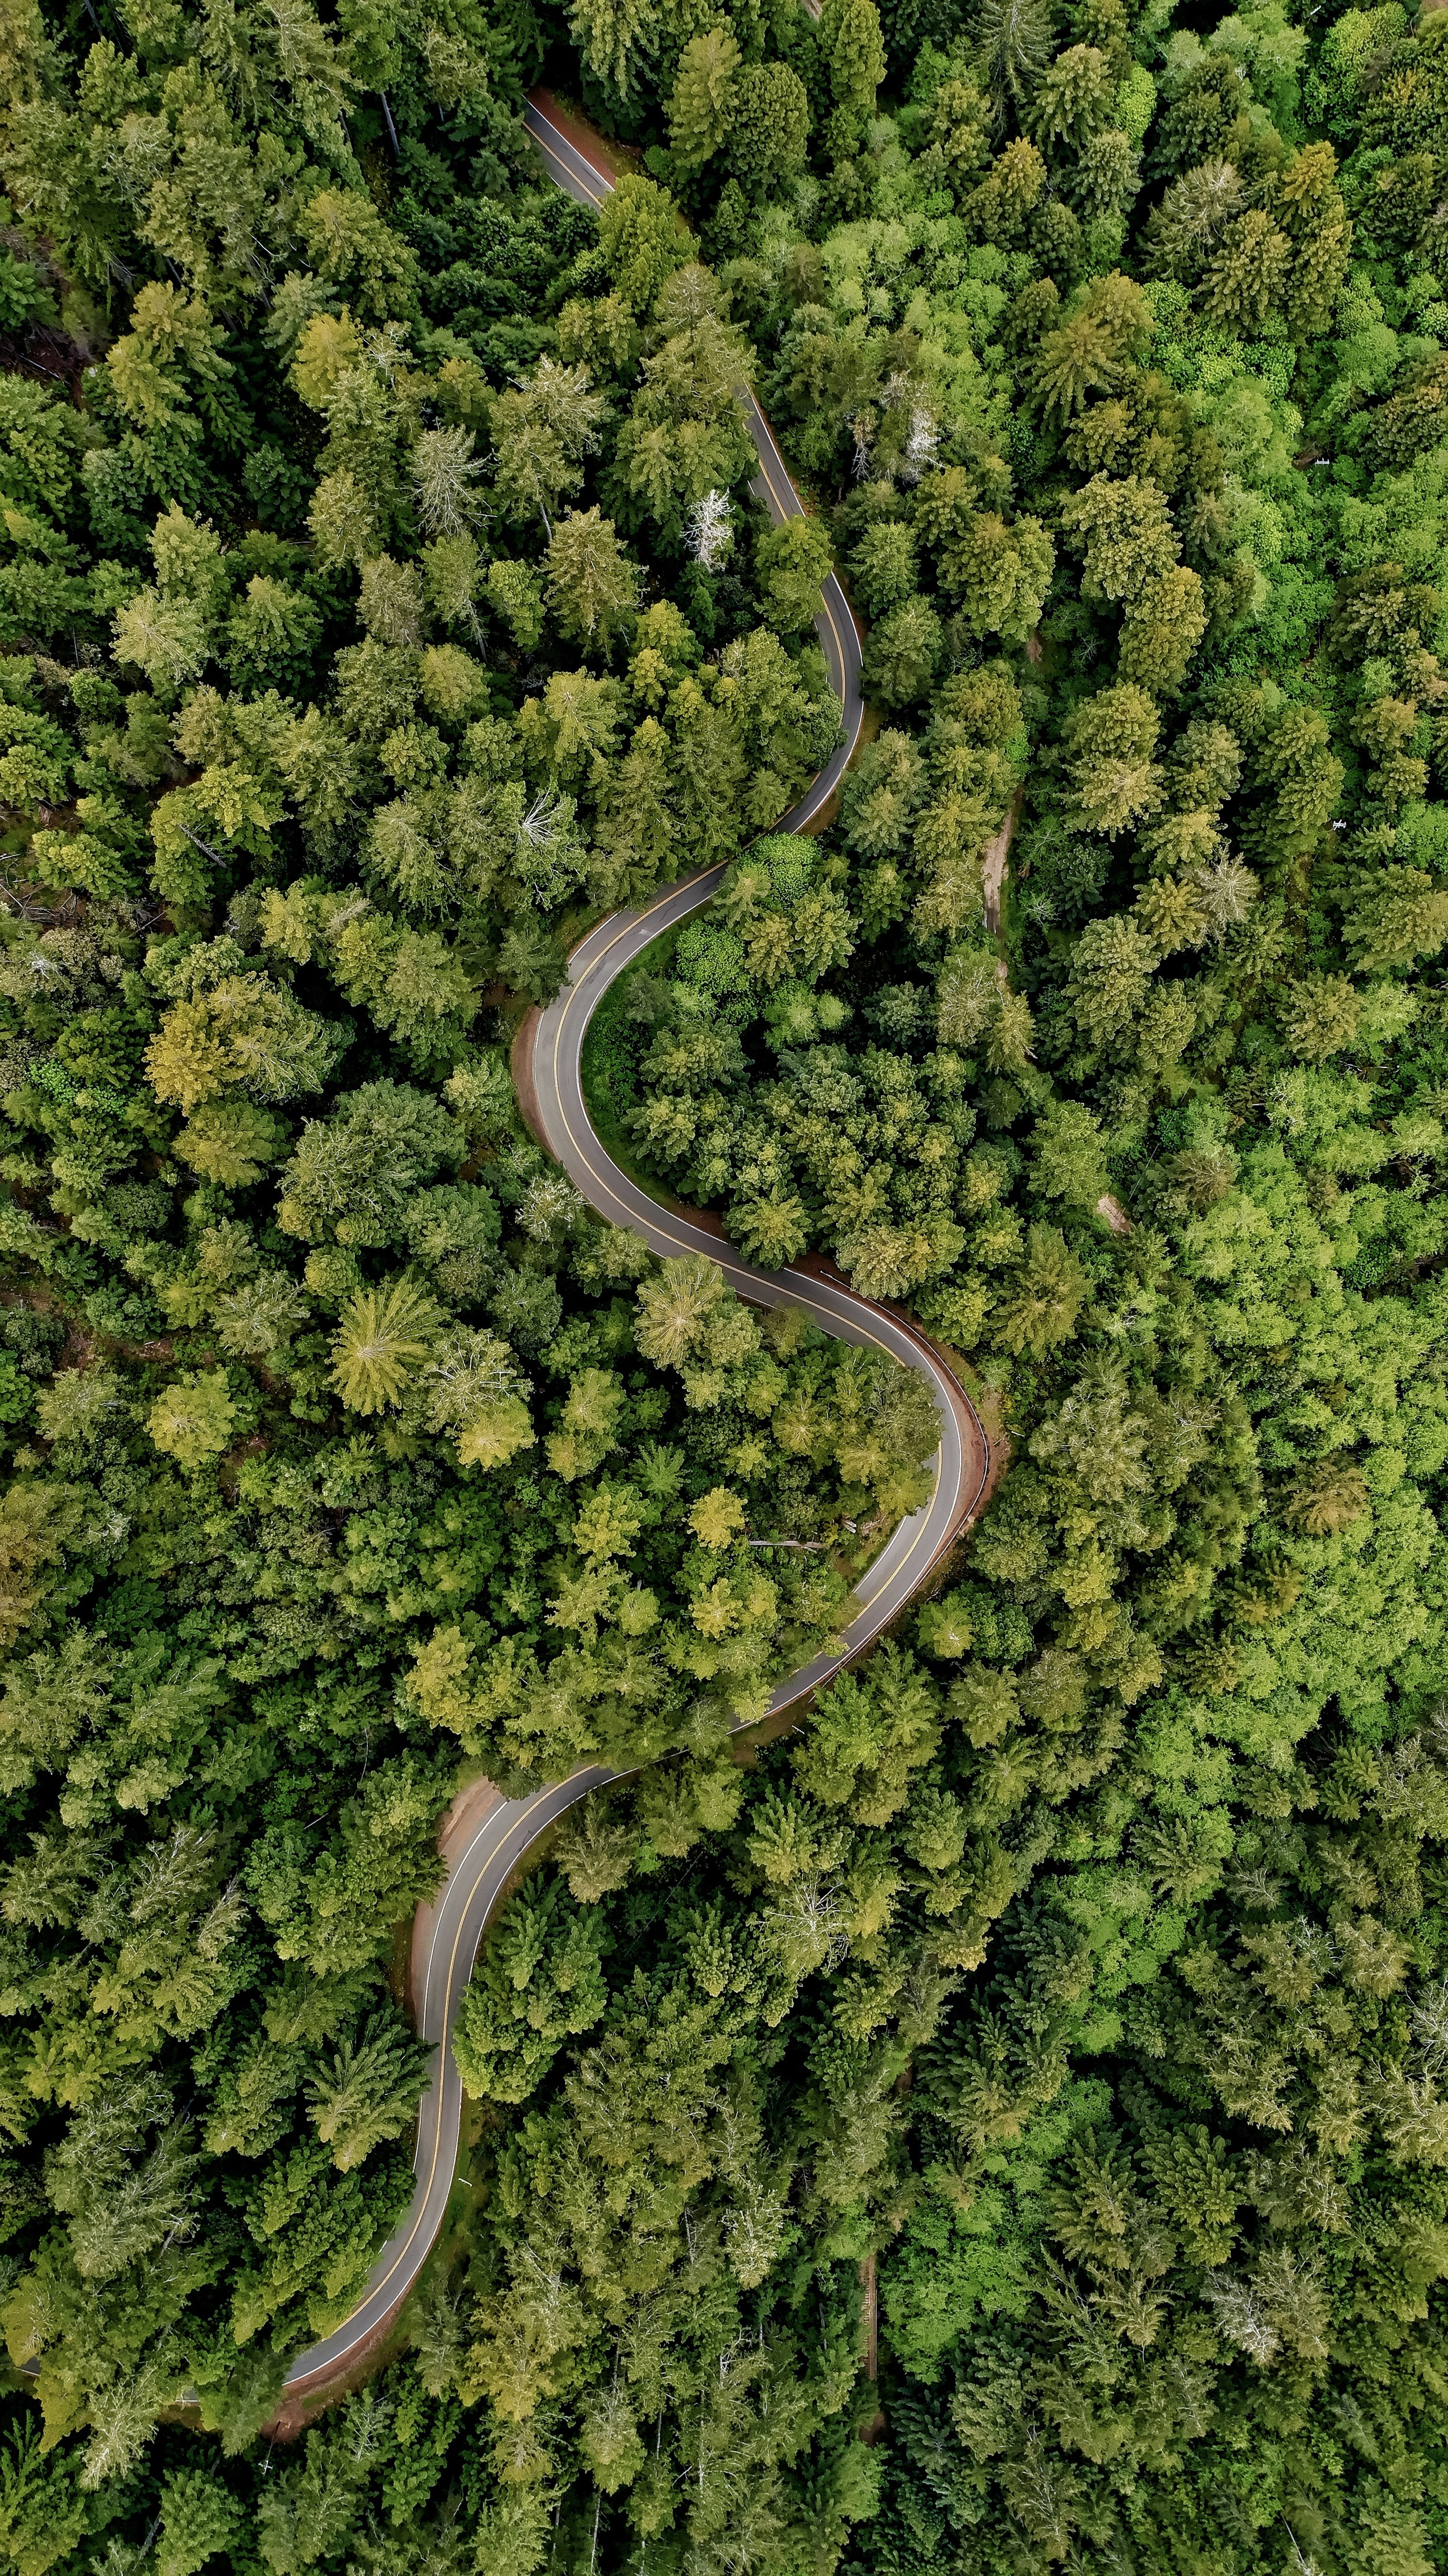 RAINFORESTS STORE CARBON AND DRASTICALLY SLOW CLIMATE CHANGE -